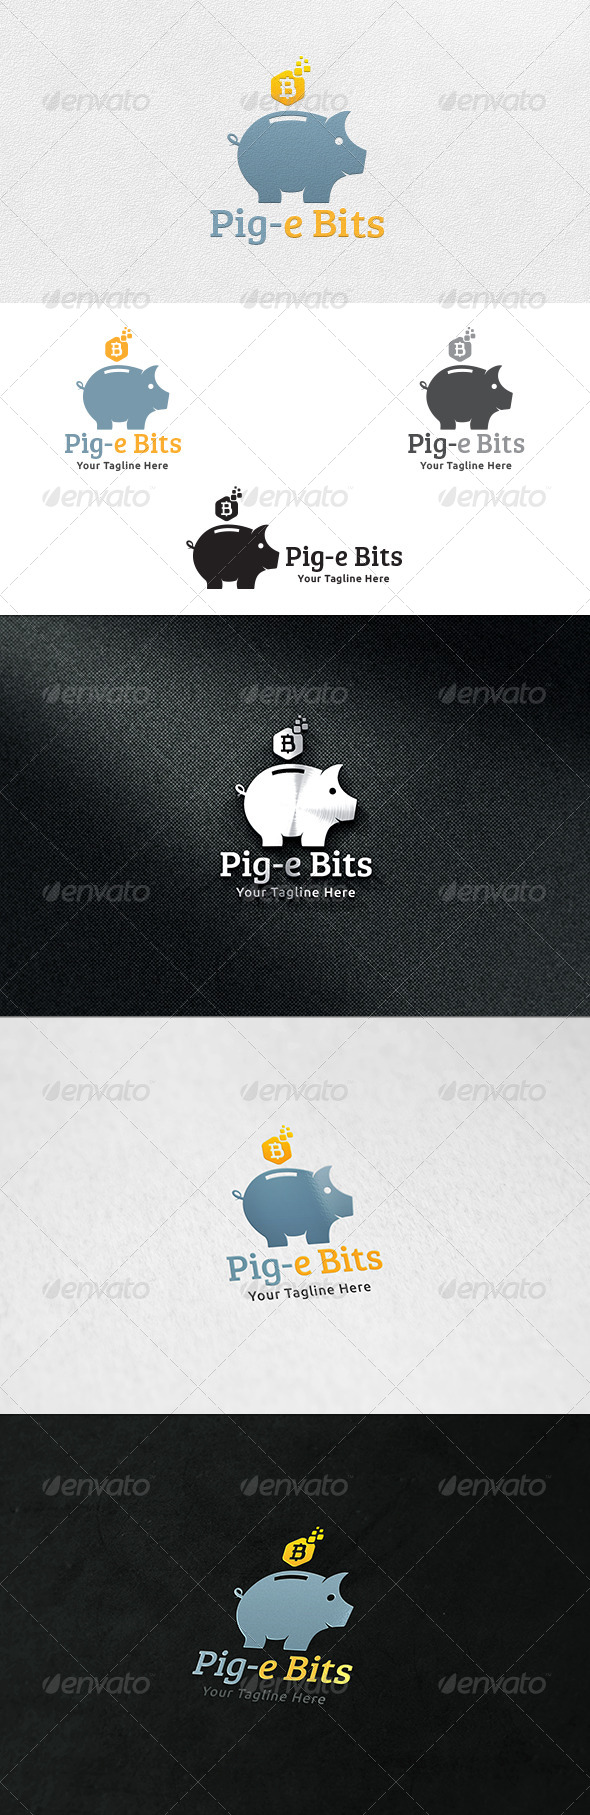 Piggy Bit Bank - Logo Template - Animals Logo Templates